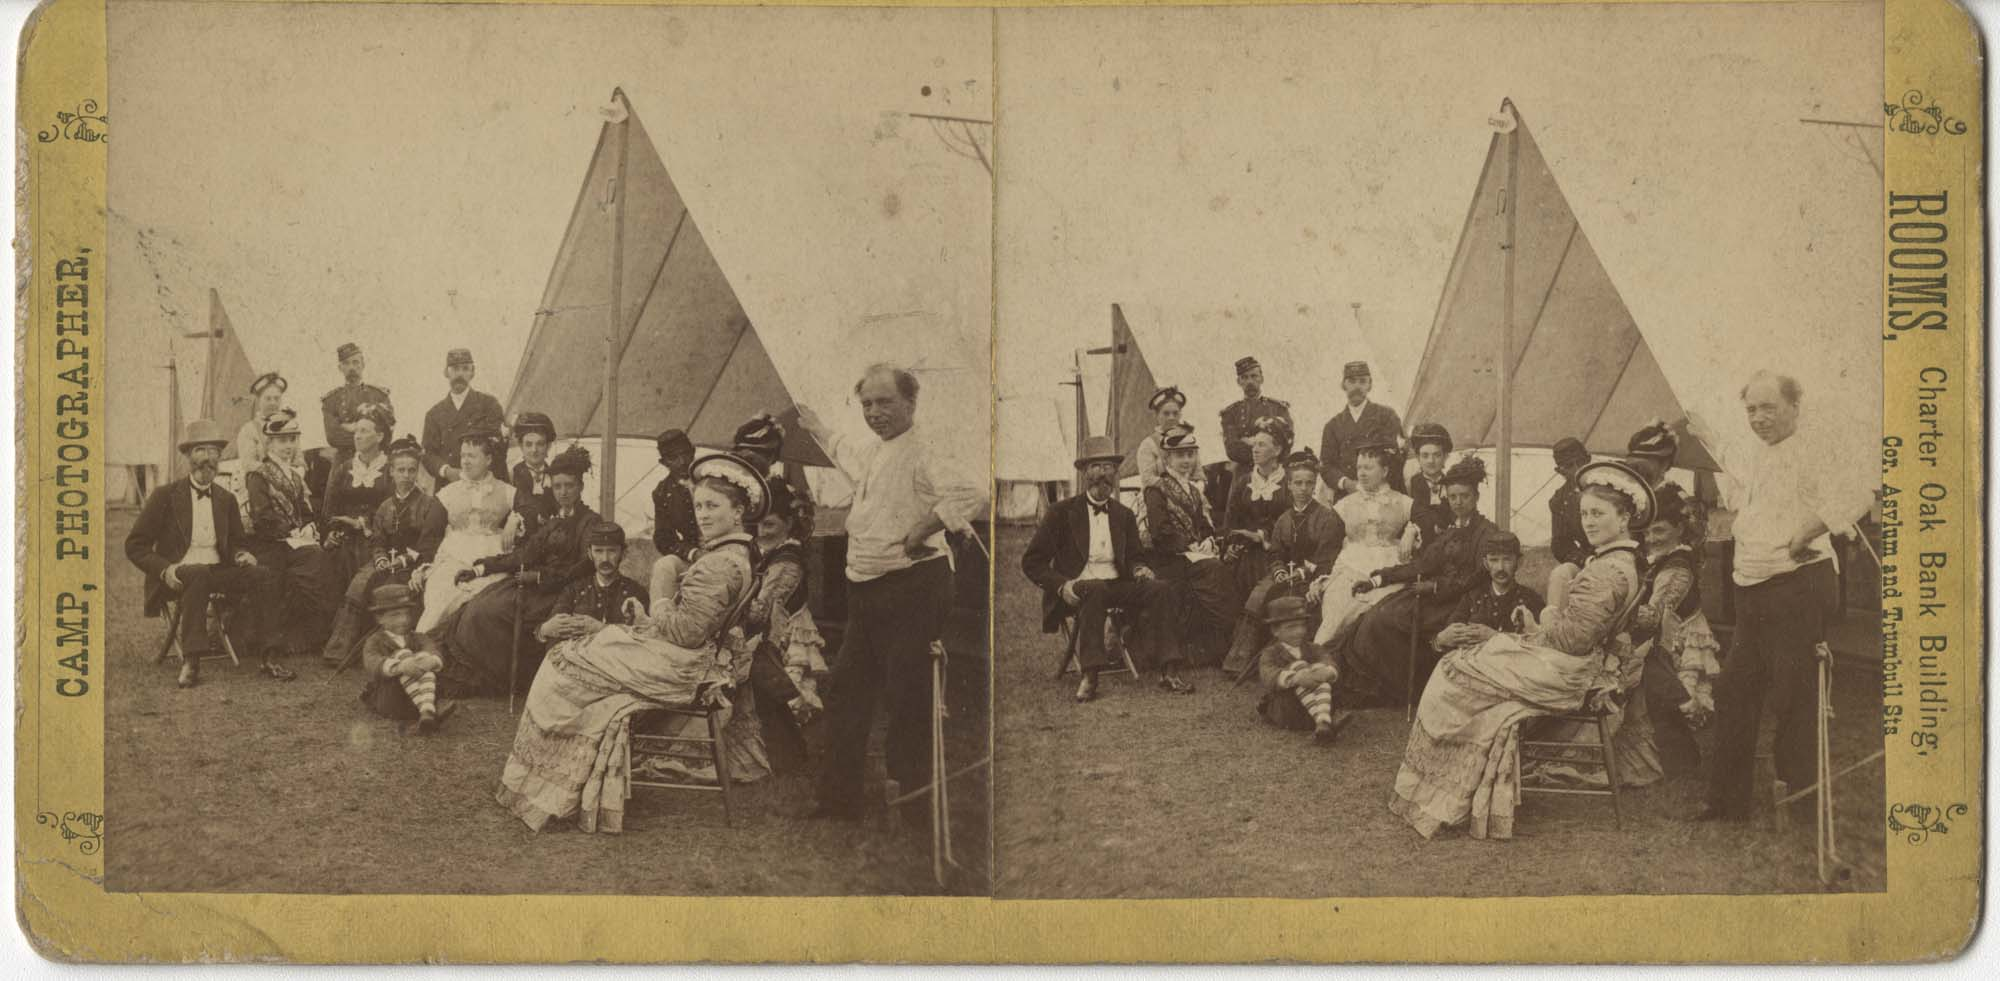 Posed Group with Camping Tents